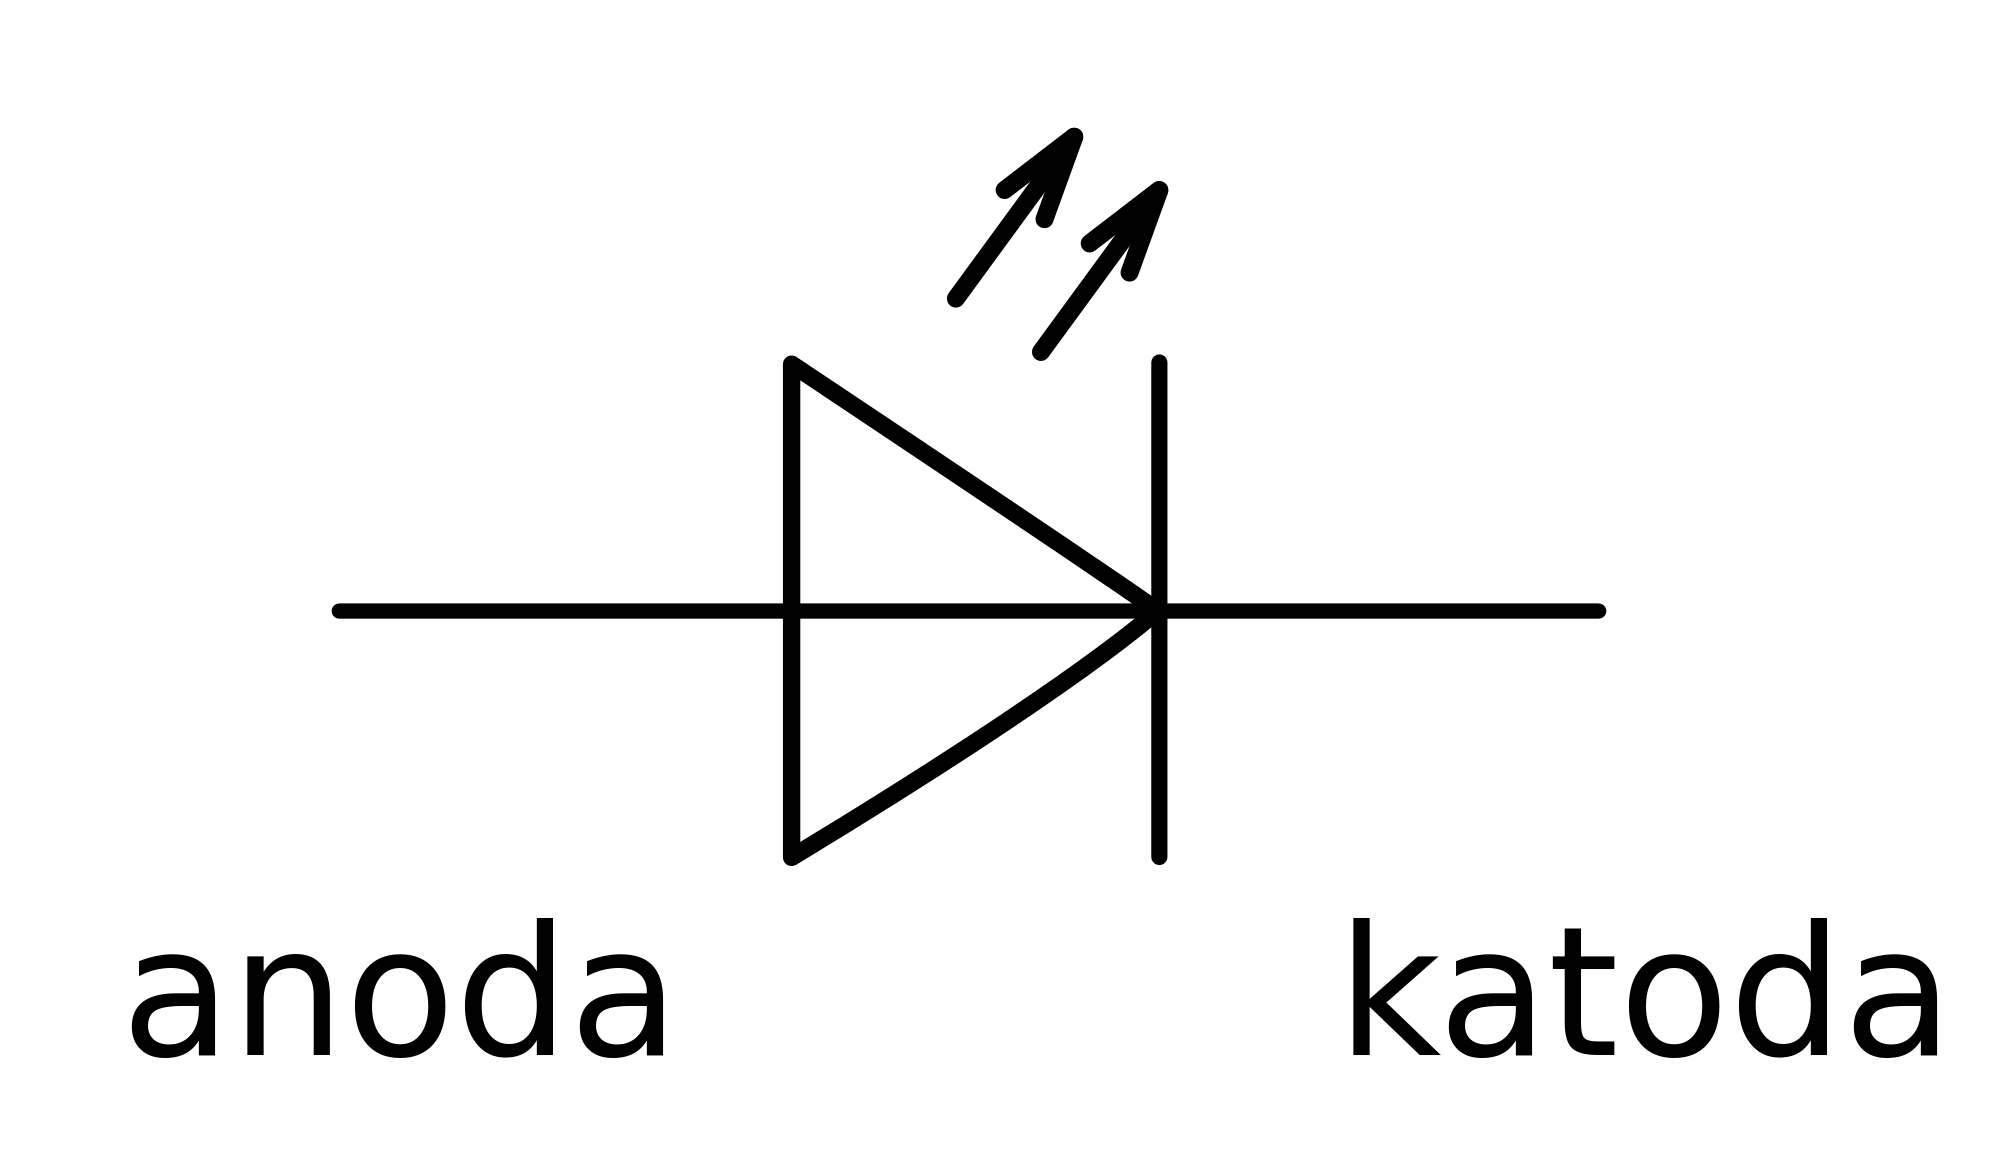 schematic symbol for resistor